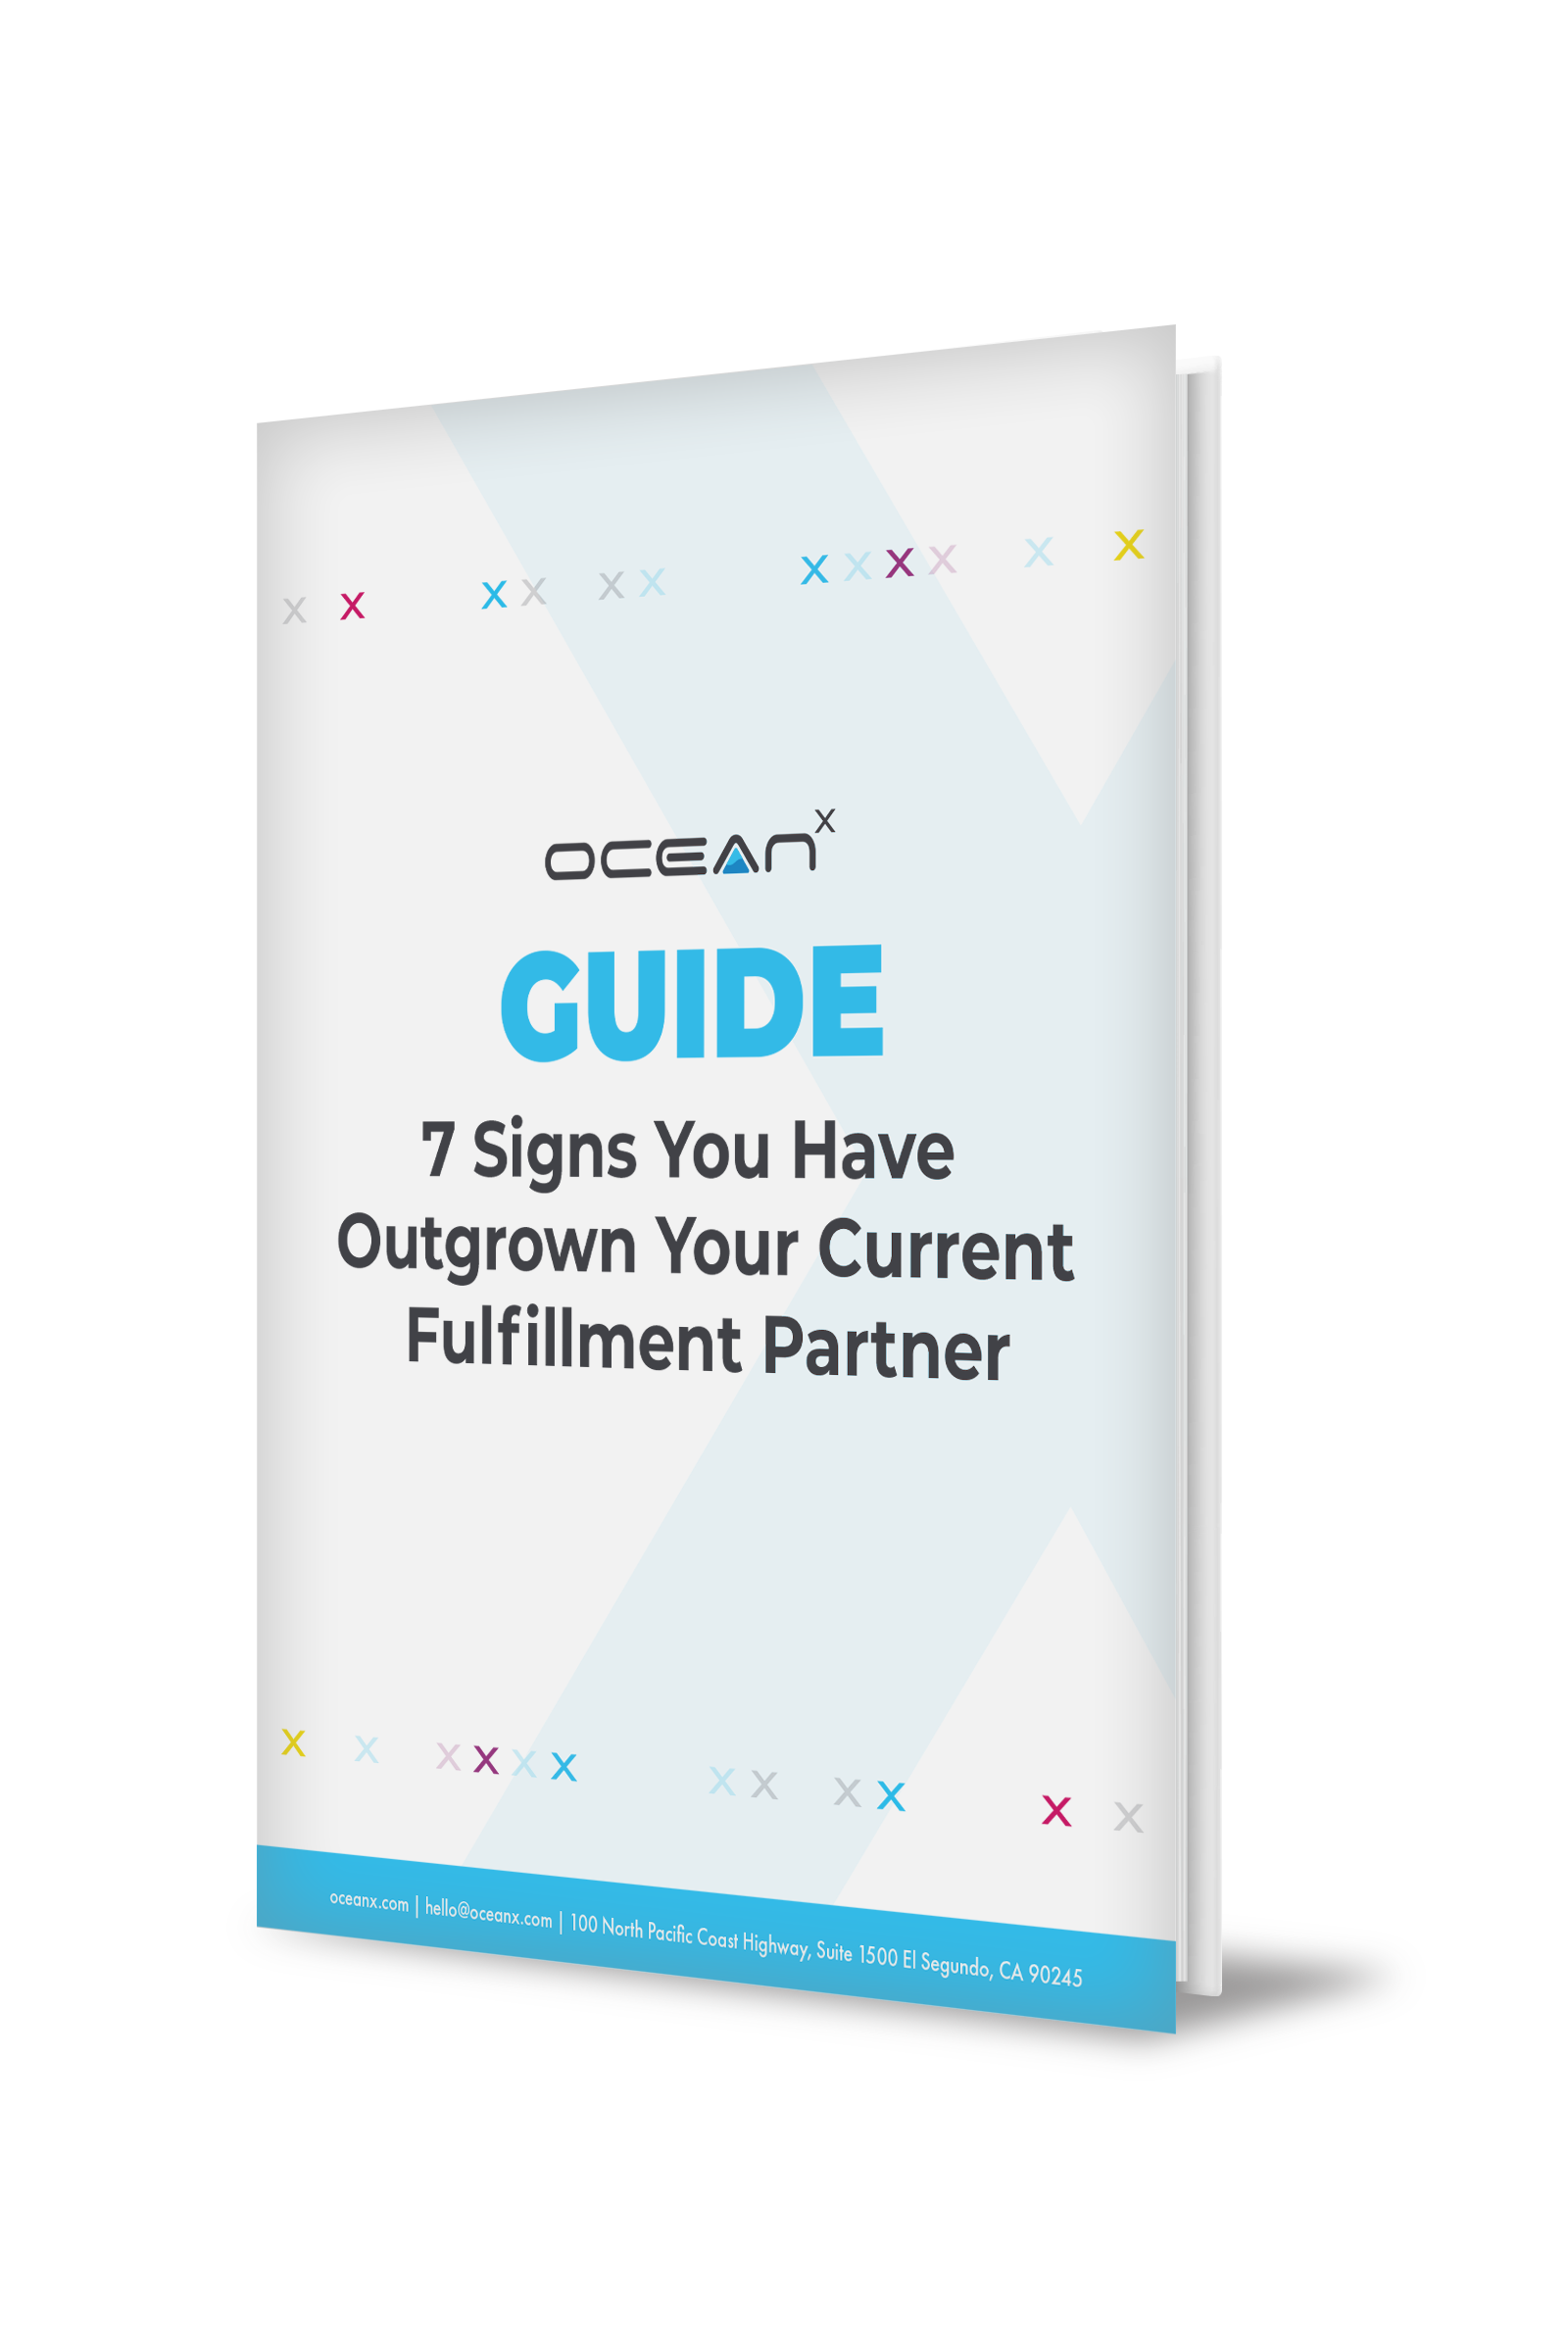 1084703_Cover Image (7 Signs You Have Outgrown Your Current Fulfillment Partner)_02_060721